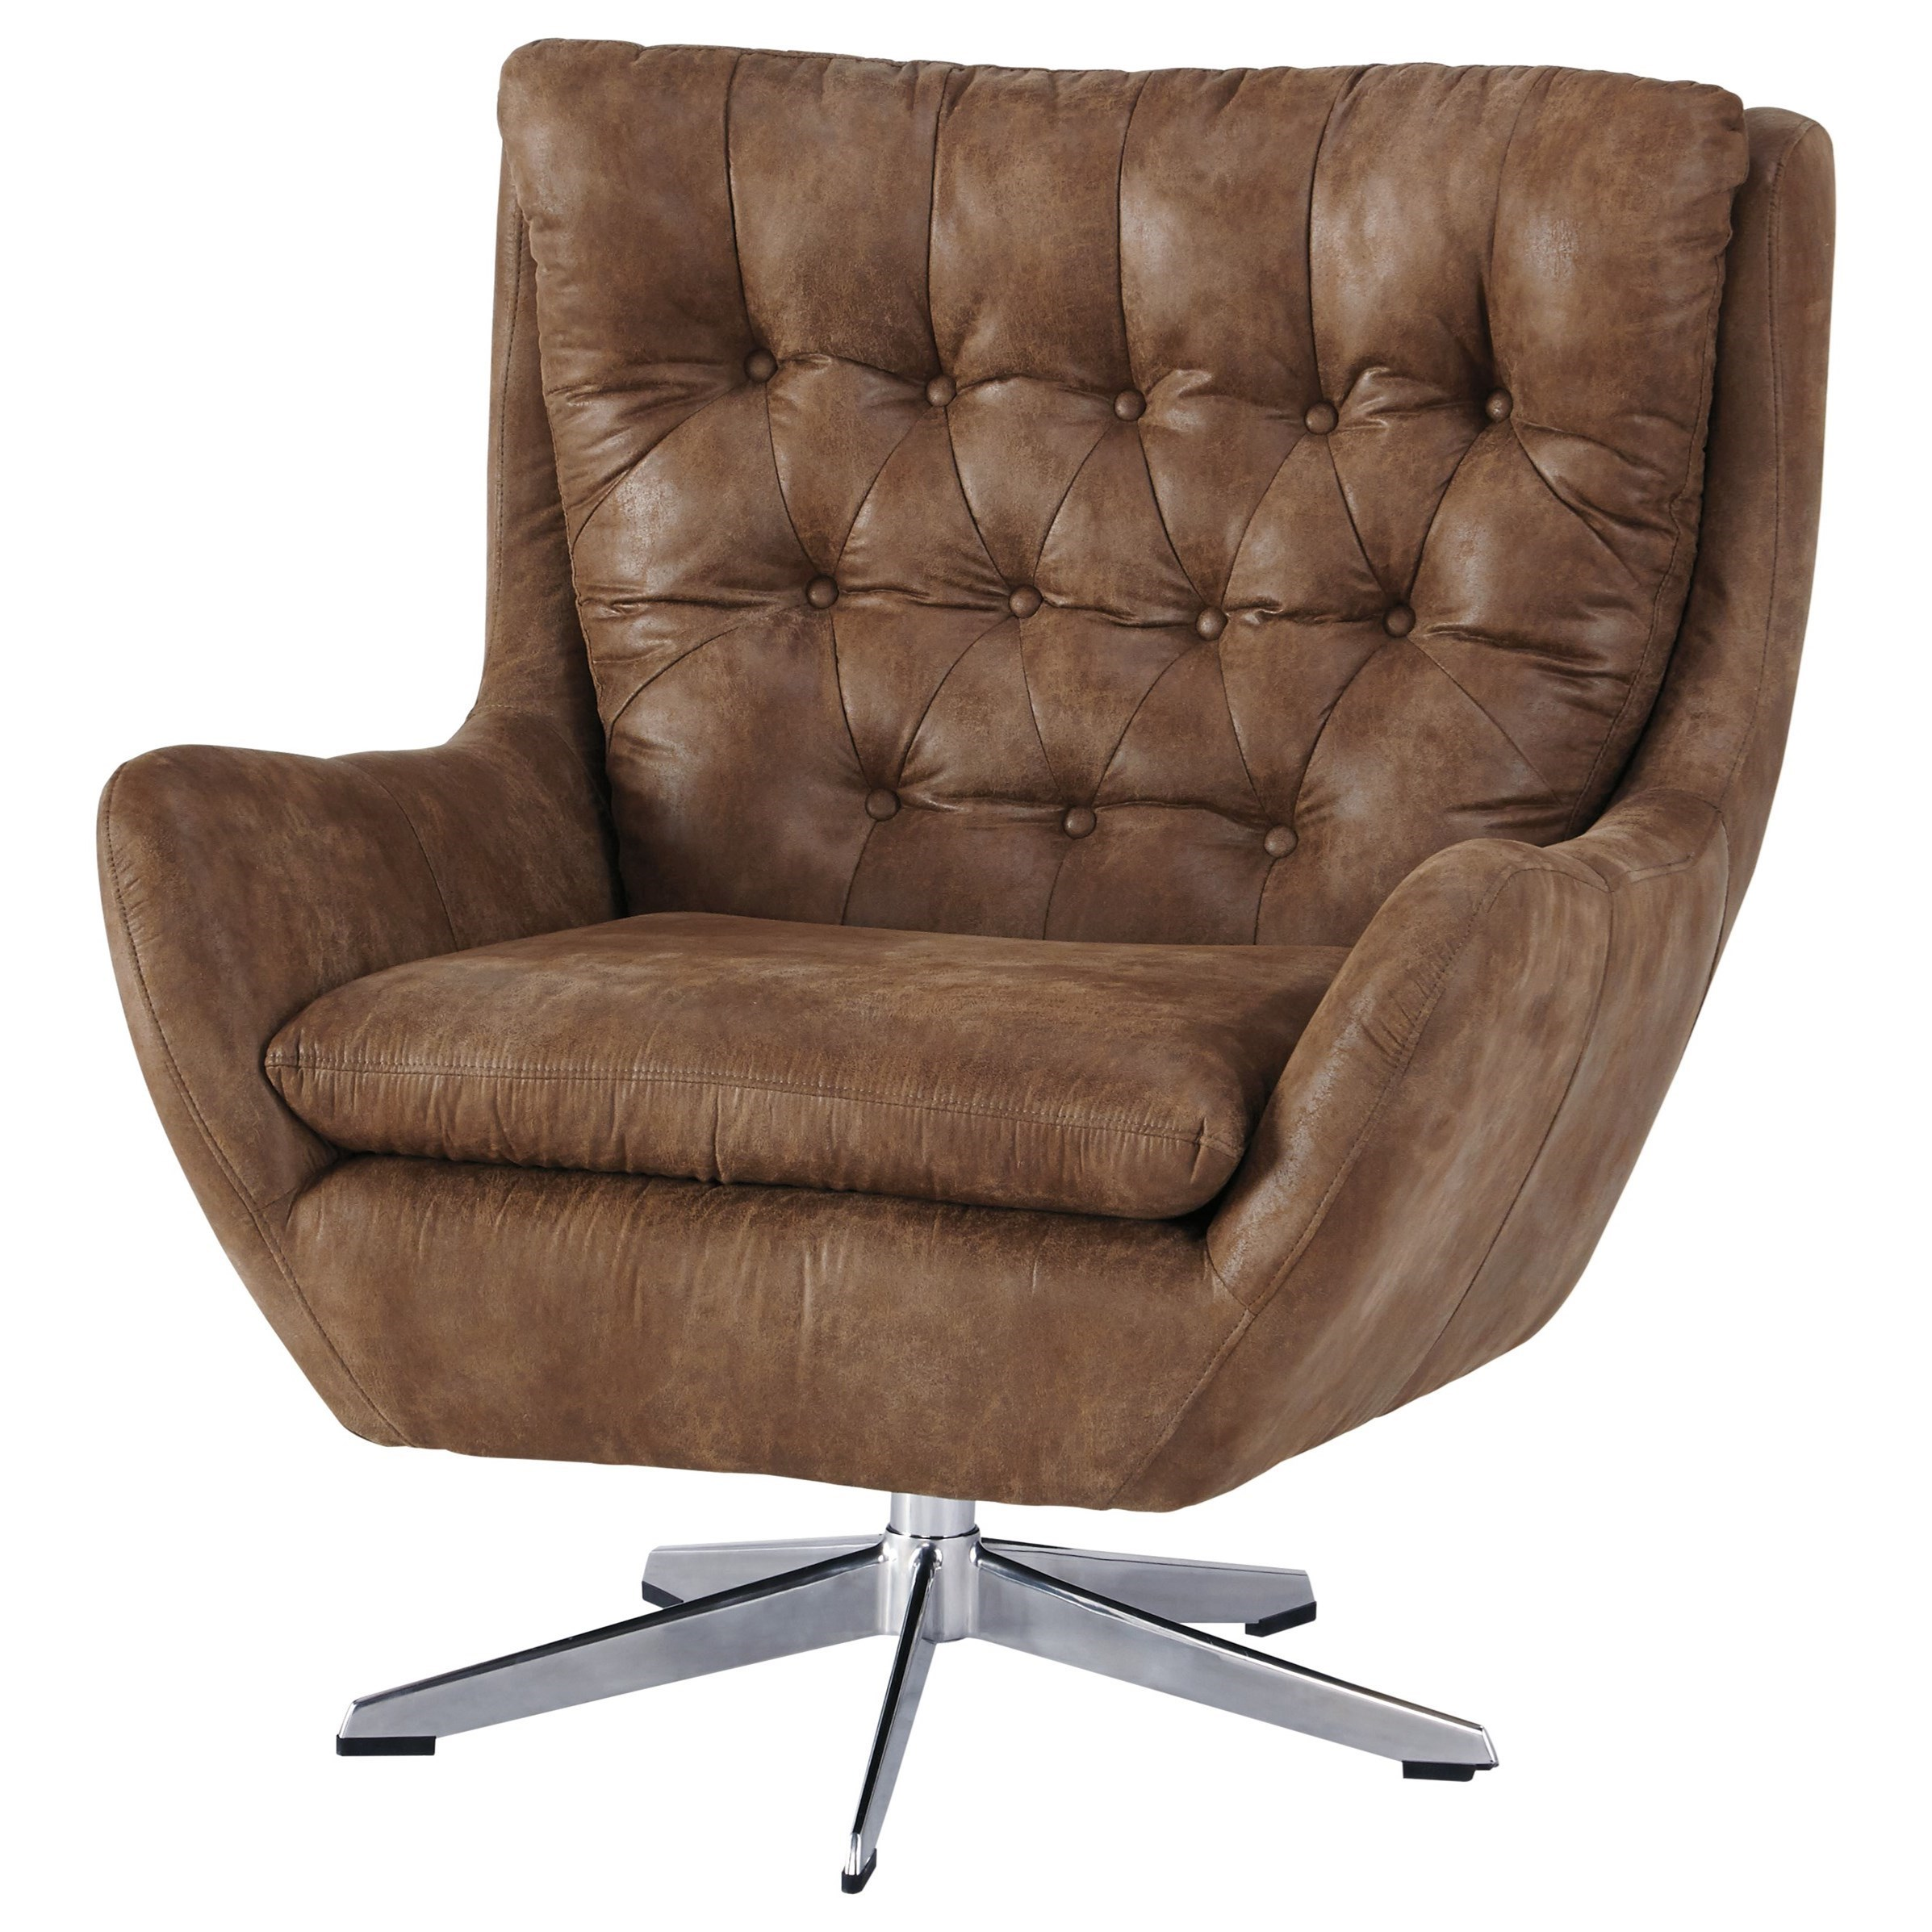 Velburg Transitional Swivel Base Accent Chair With Tufted Back By Signature Design By Ashley At Royal Furniture